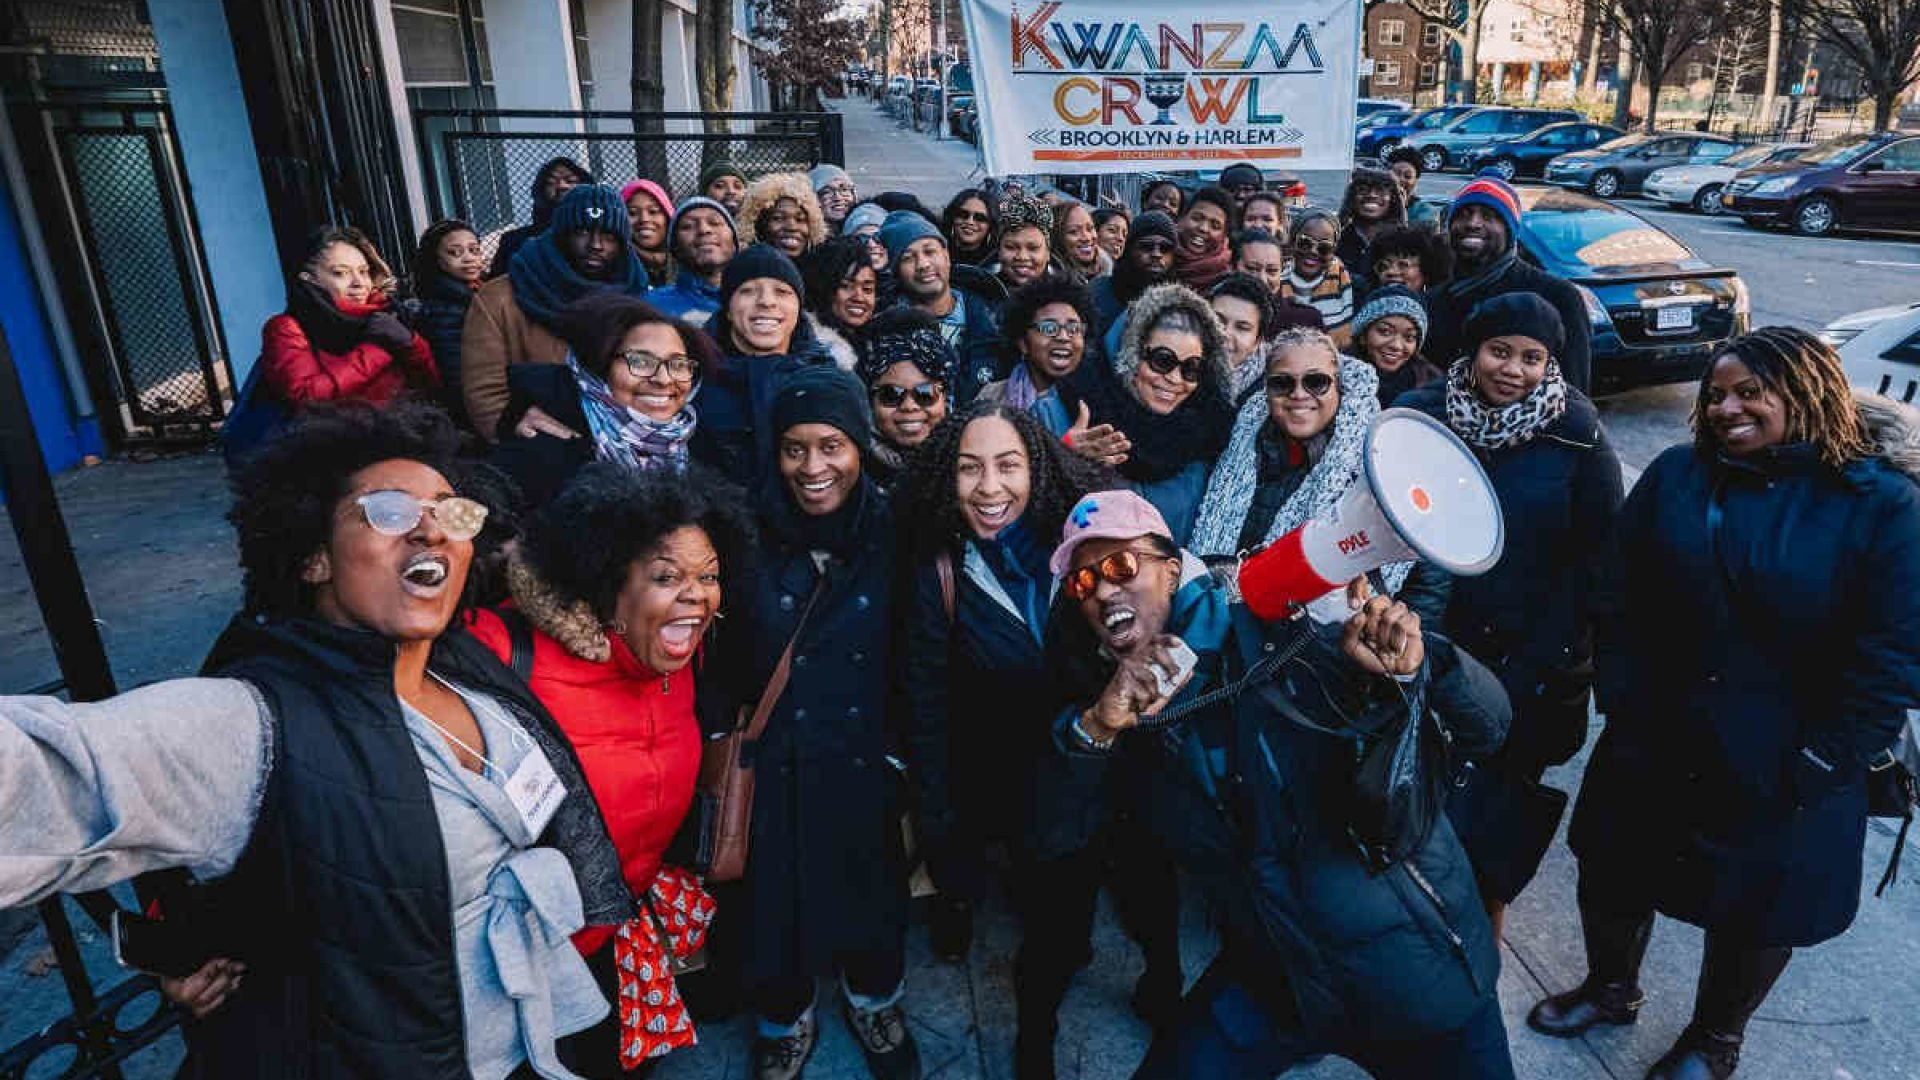 Party With A Purpose: Kwanzaa Crawl Returns For The 4th Year To Celebrate Our Black Economic Power